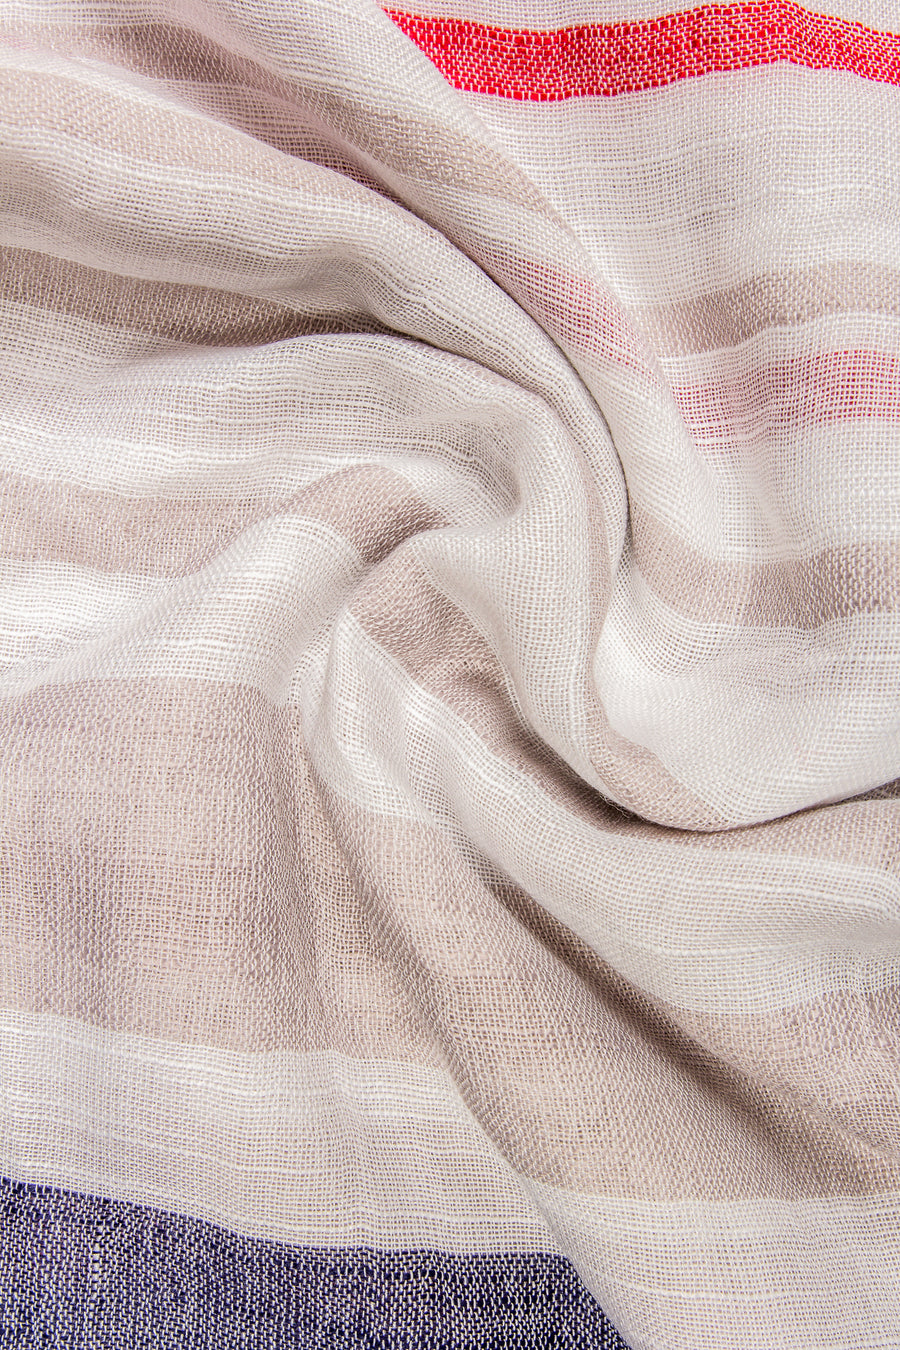 Stripy Viscose Collection White and Taupe Hijab